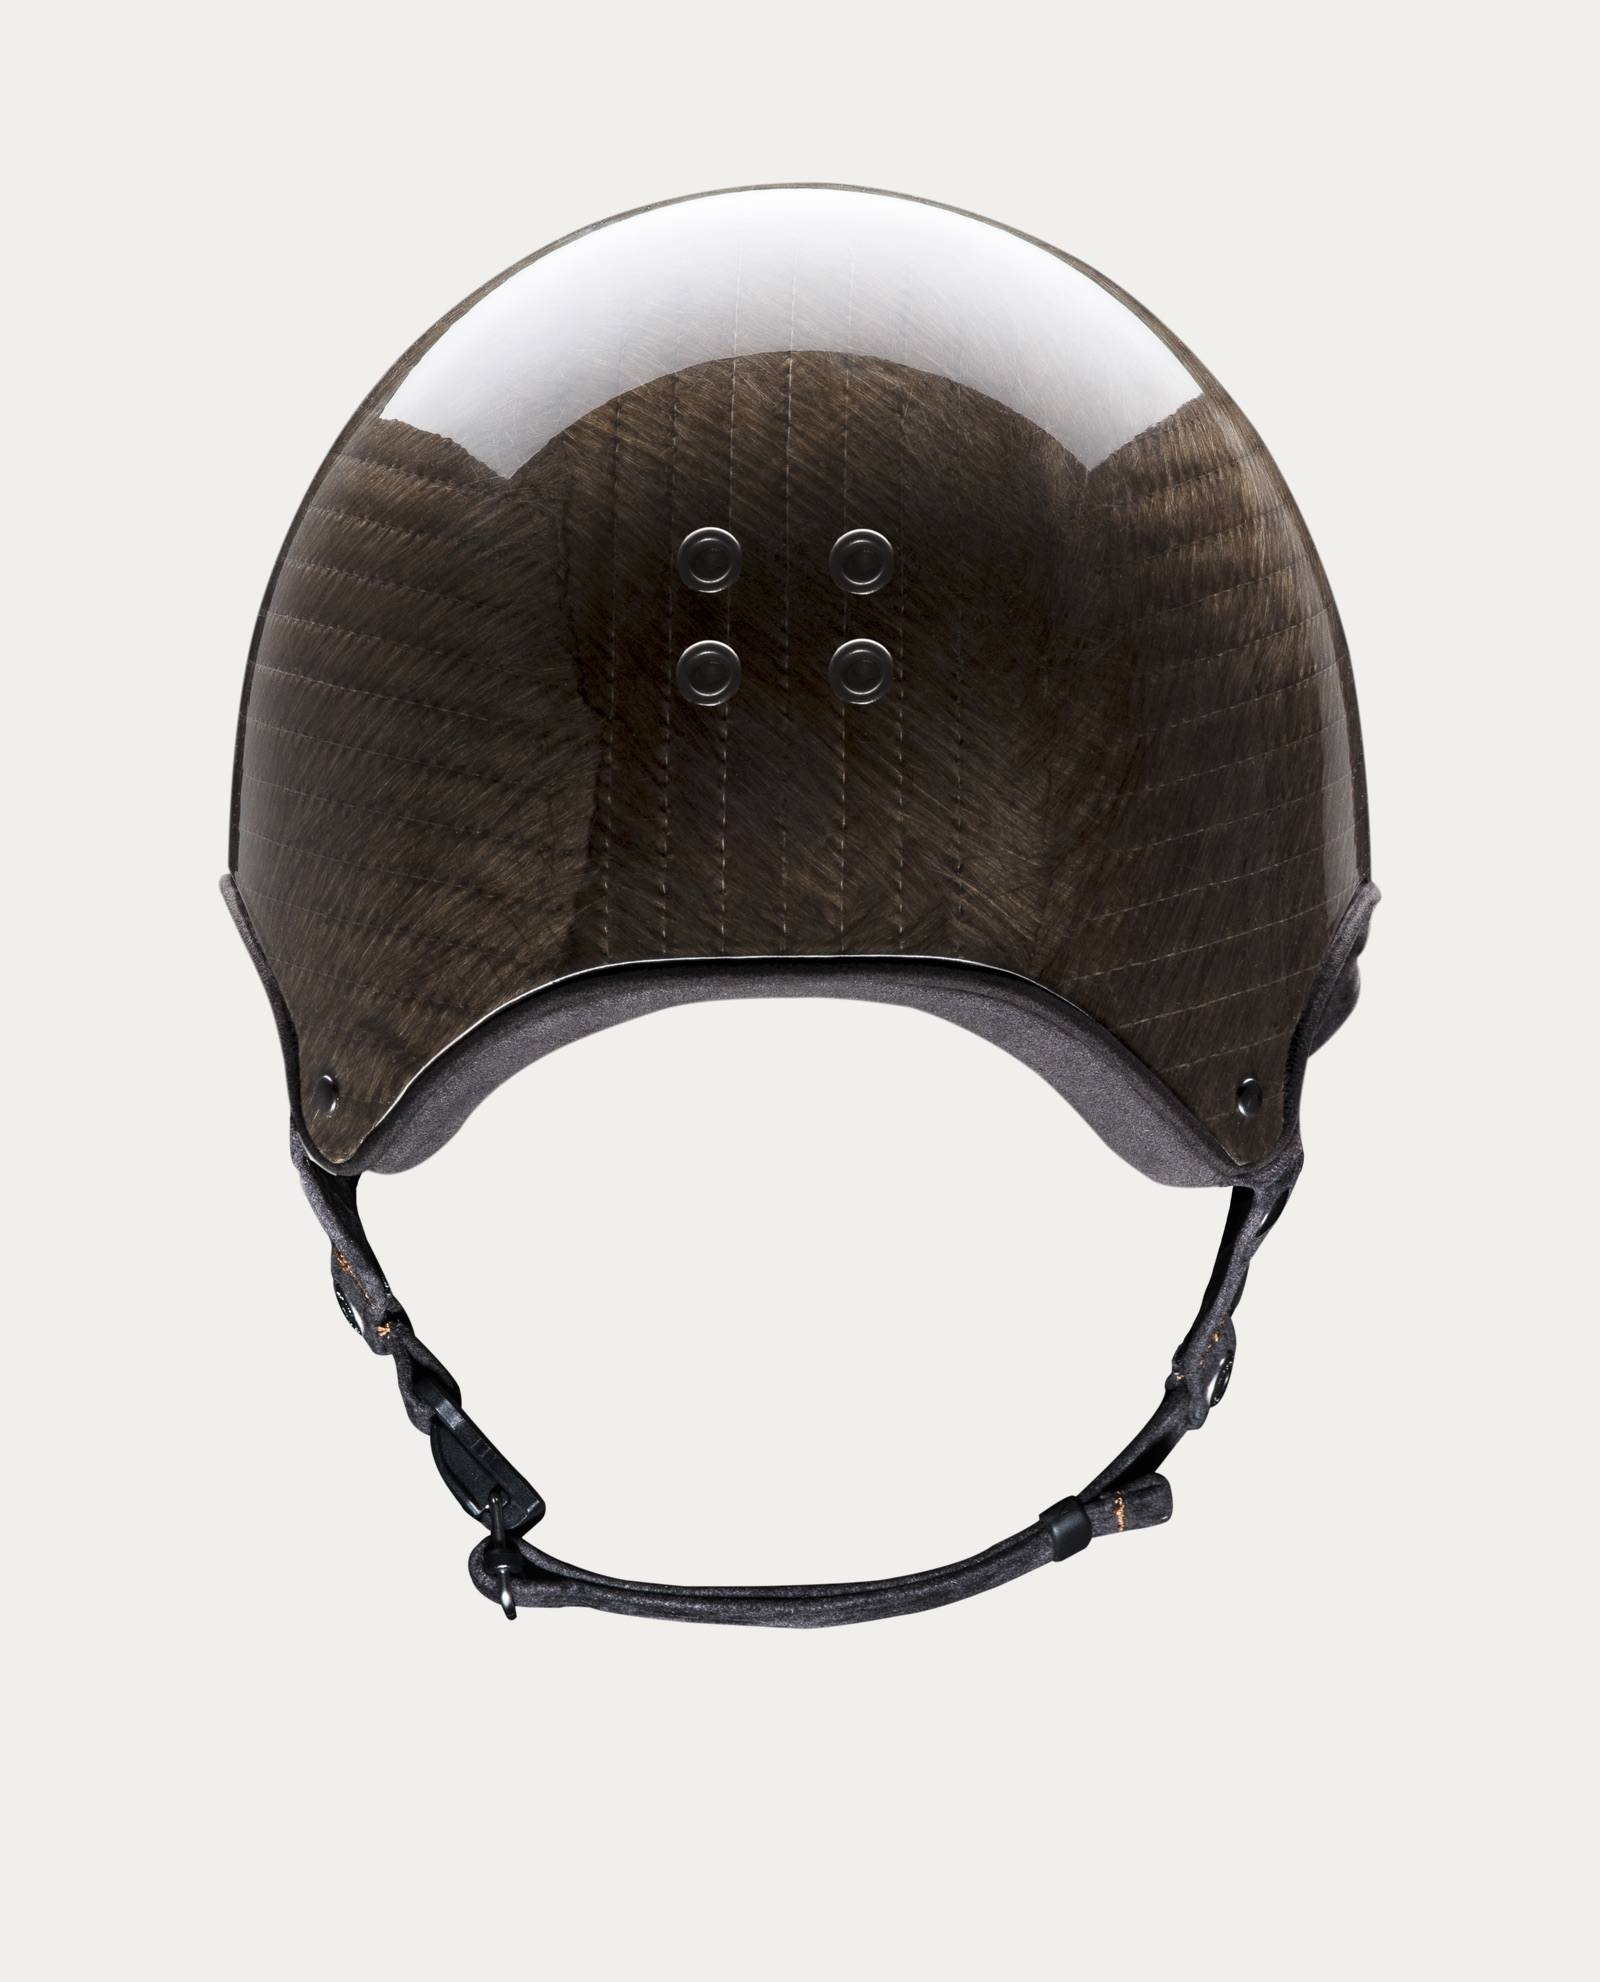 casque_velo_egide_apollo_lin_1